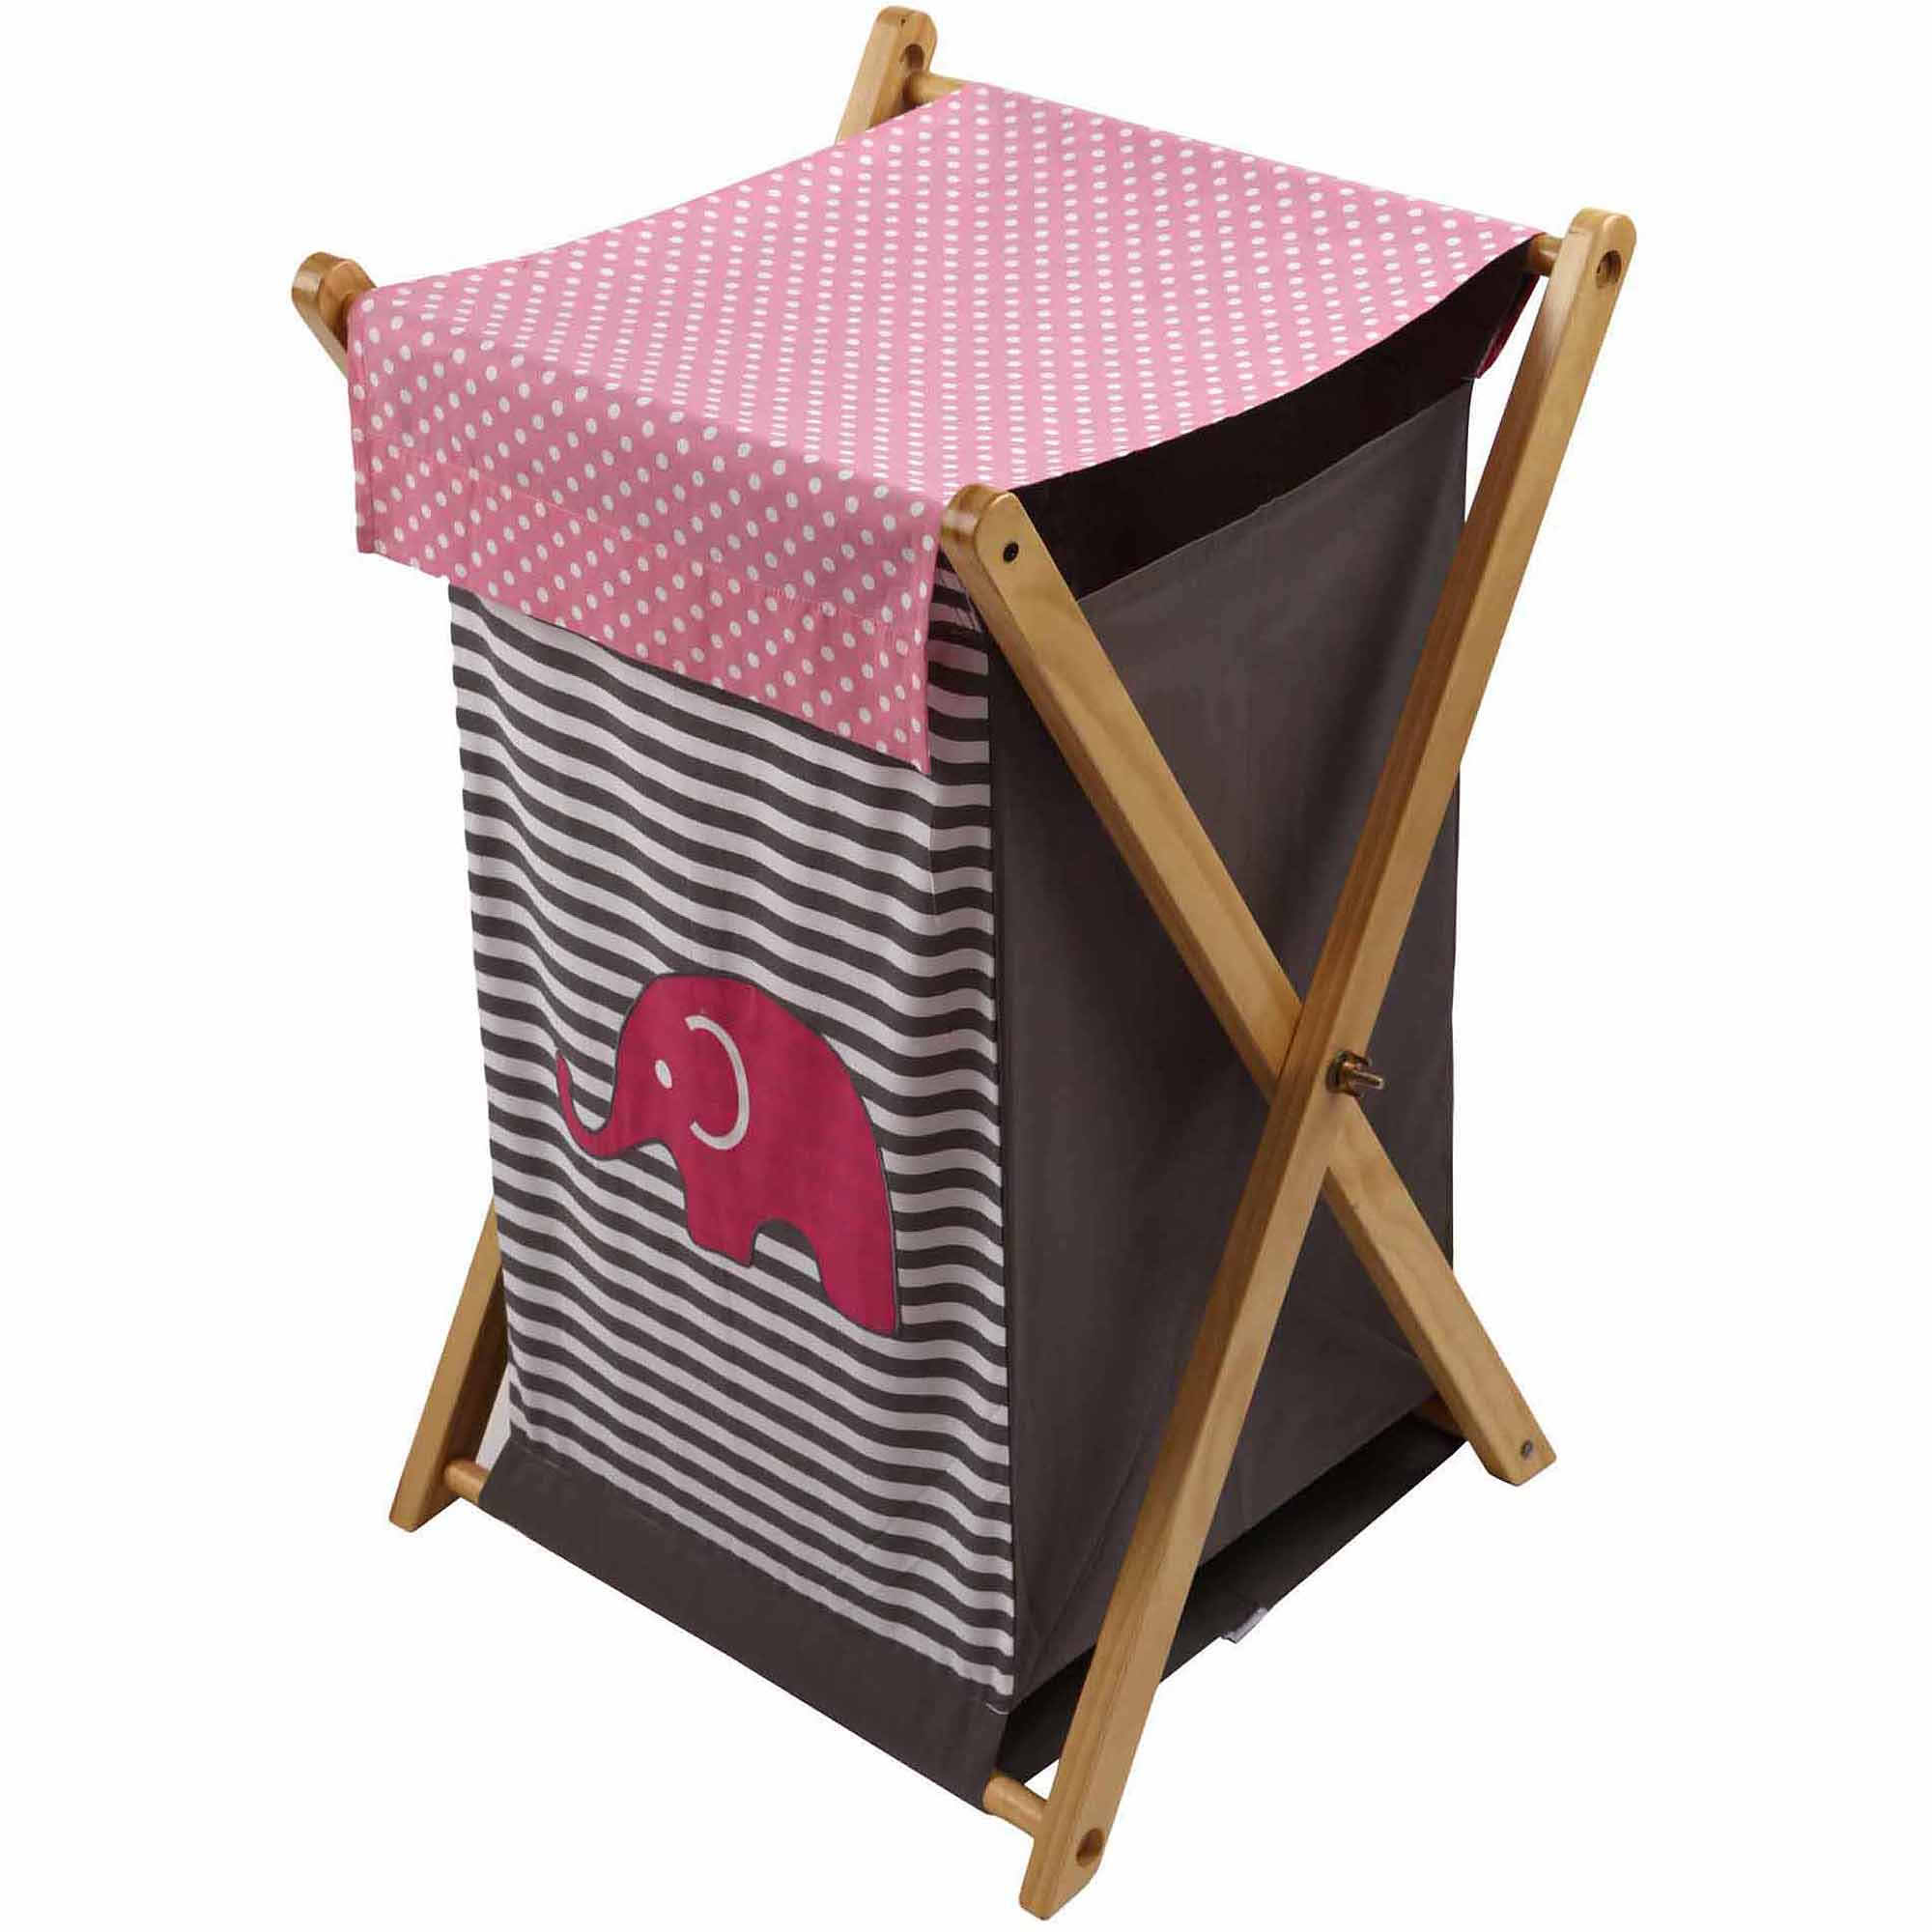 Bacati - Elephants Hamper with Cotton Percale cover, mesh liner and Natural Color Wooden frame, Pink/Gray